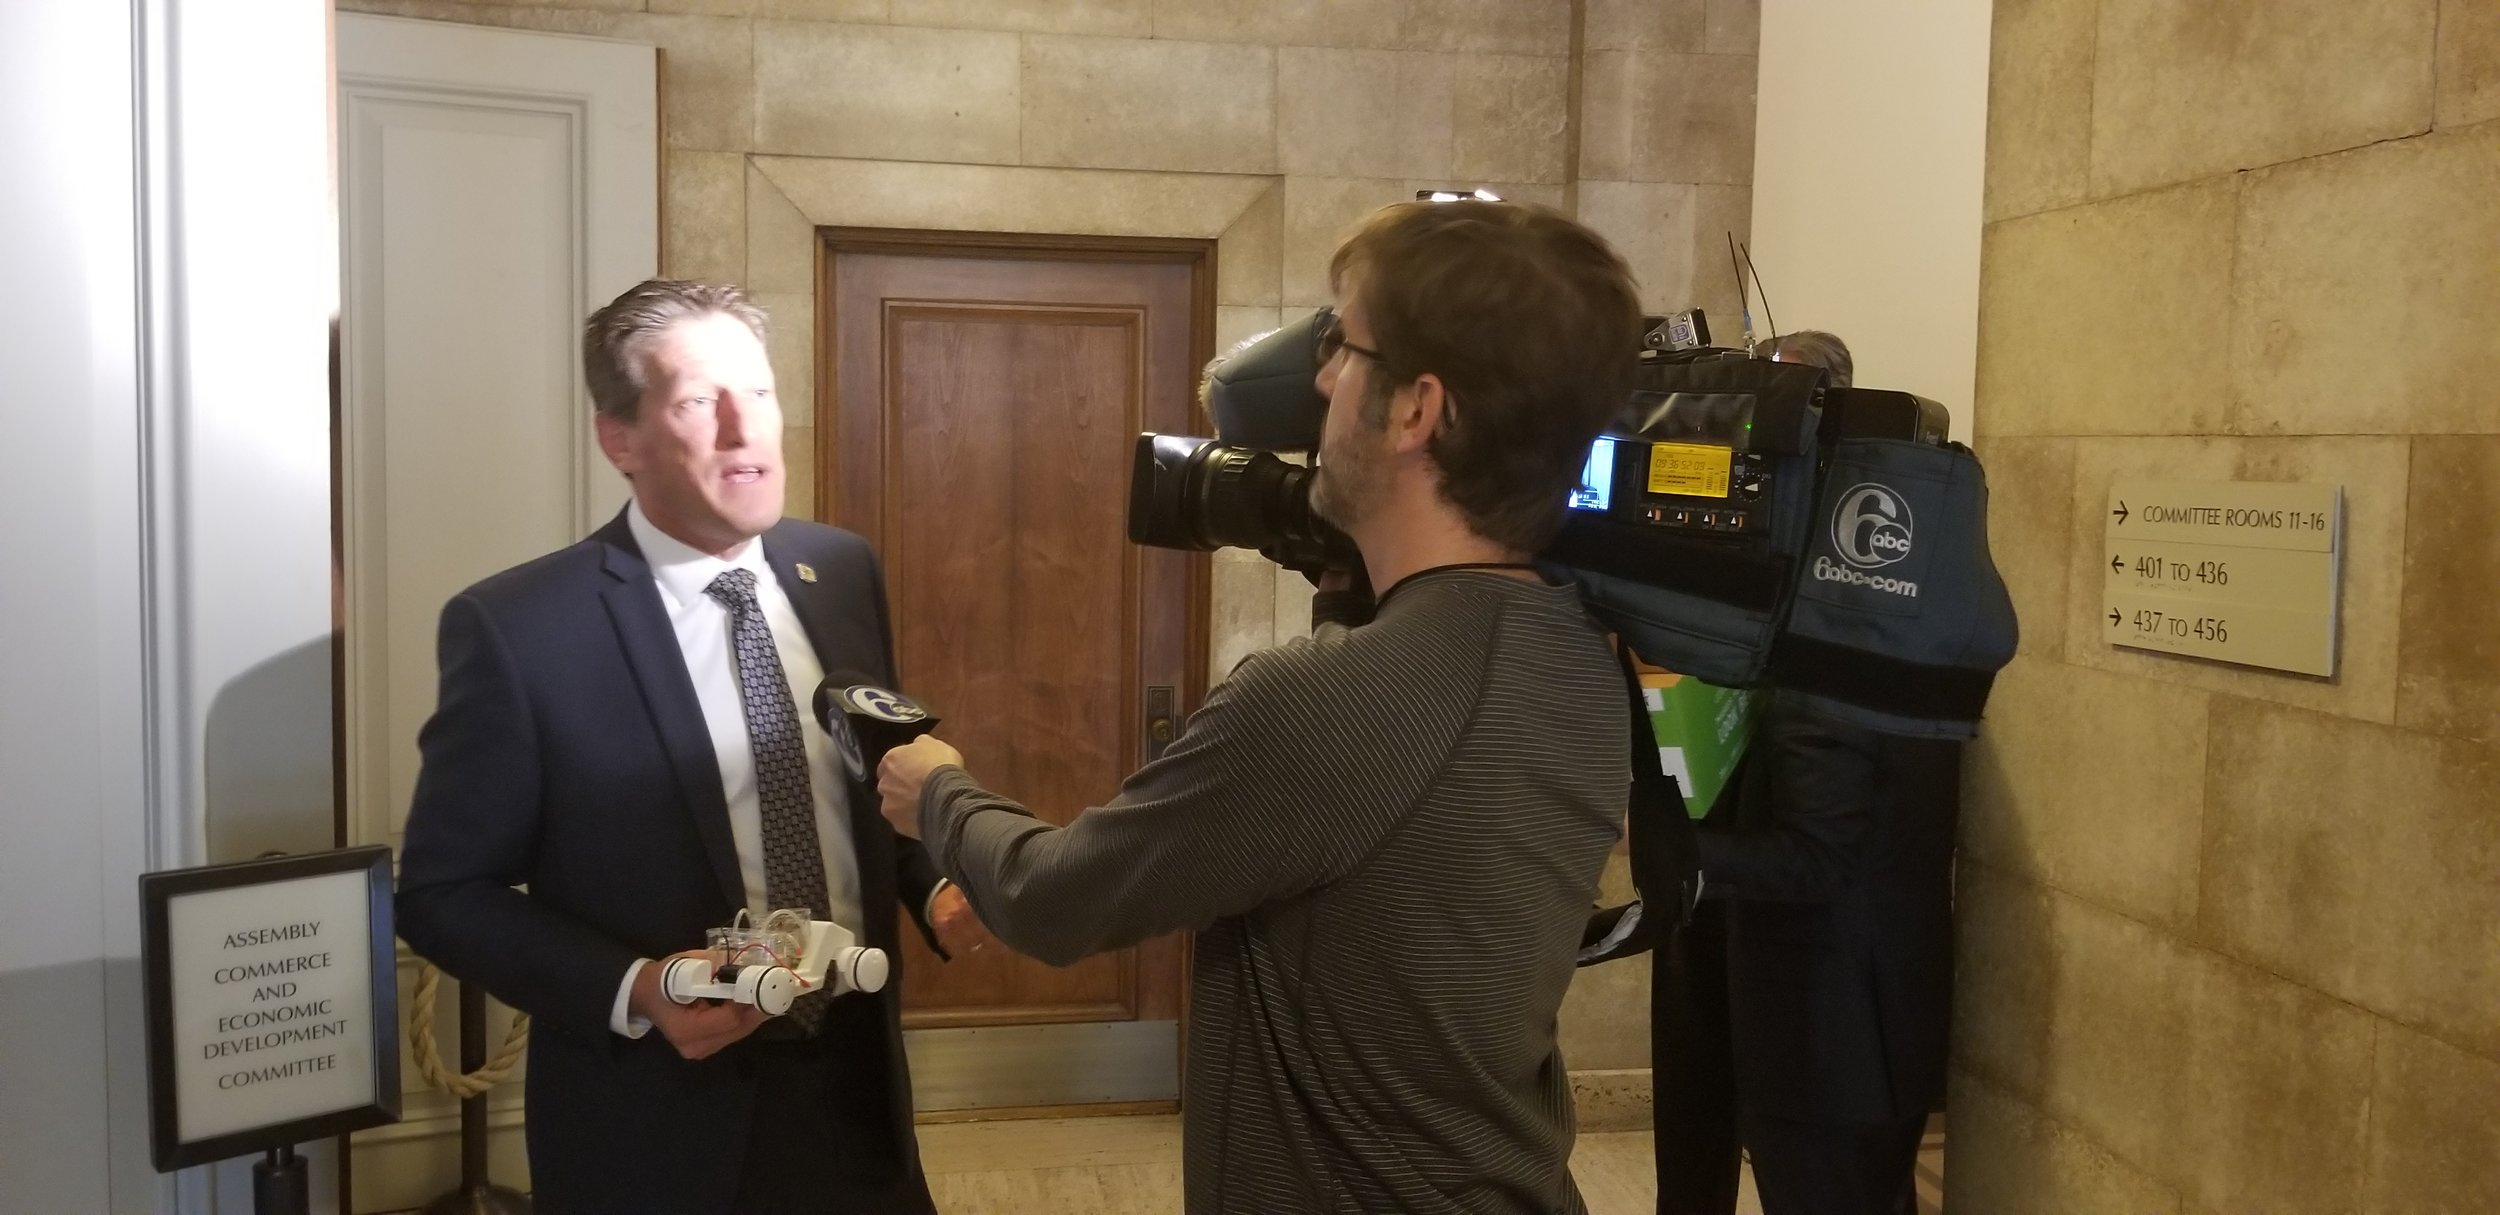 Assemblyman Andrew Zwicker (left) discusses hydrogen fuel cell transportation with a local ABC news affiliate.